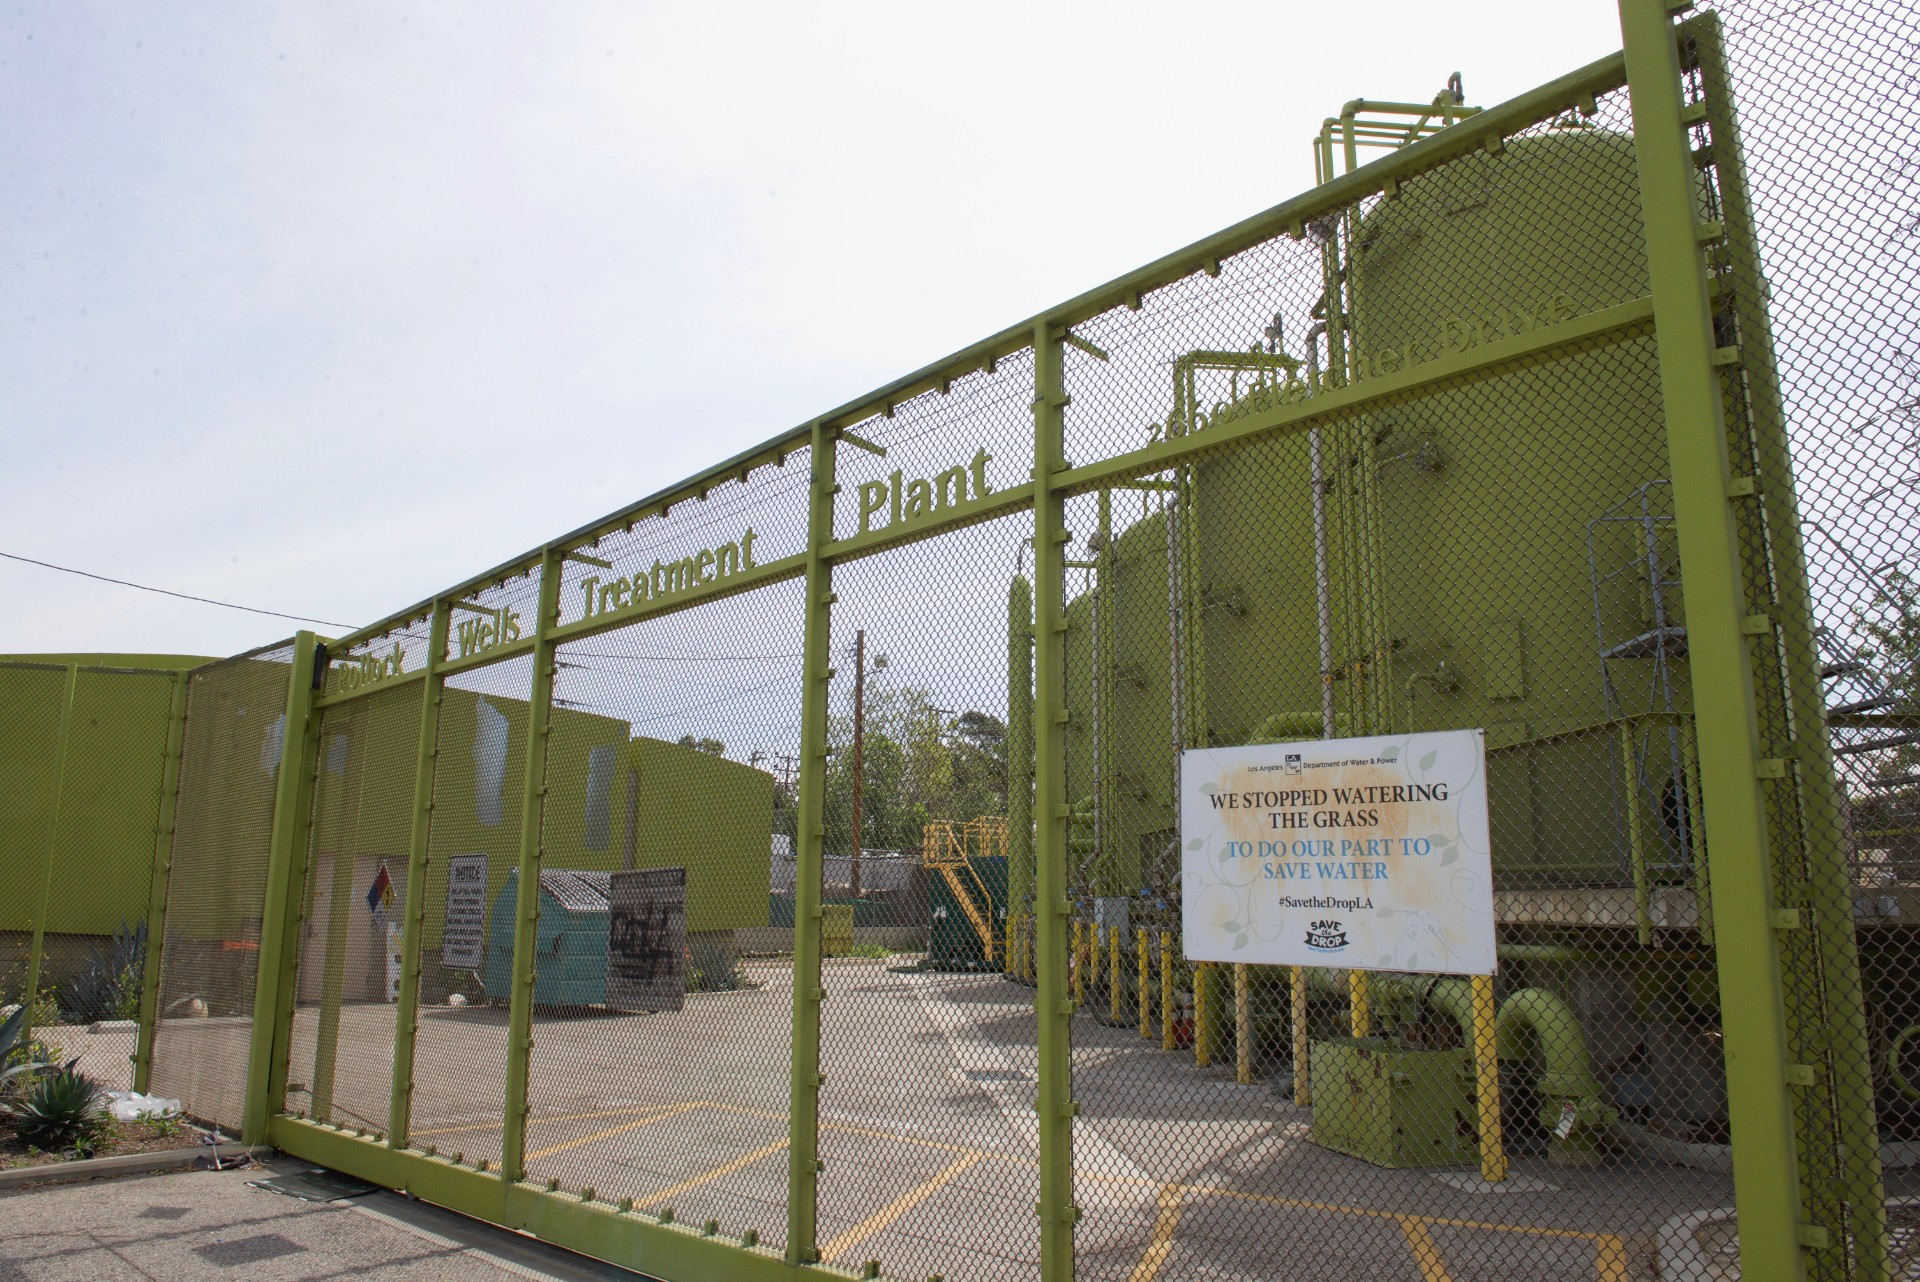 Pollack treatment plant